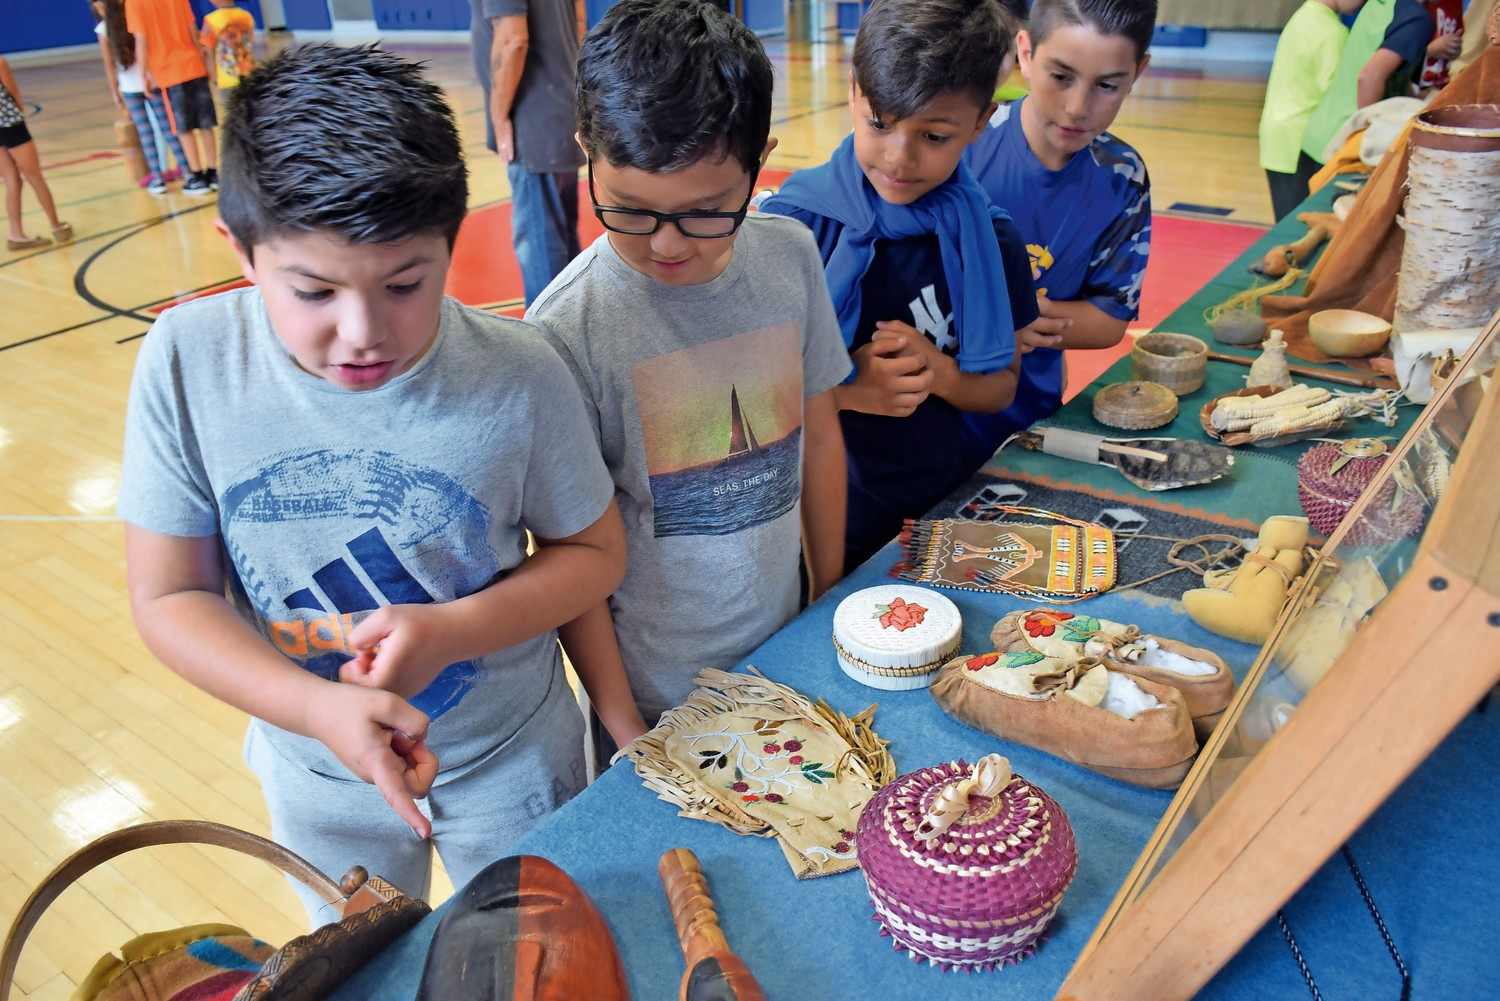 Parkway Elementary School fourth-graders examined American Indian tools during an in-school field trip led by Journeys into American Indian Territory.